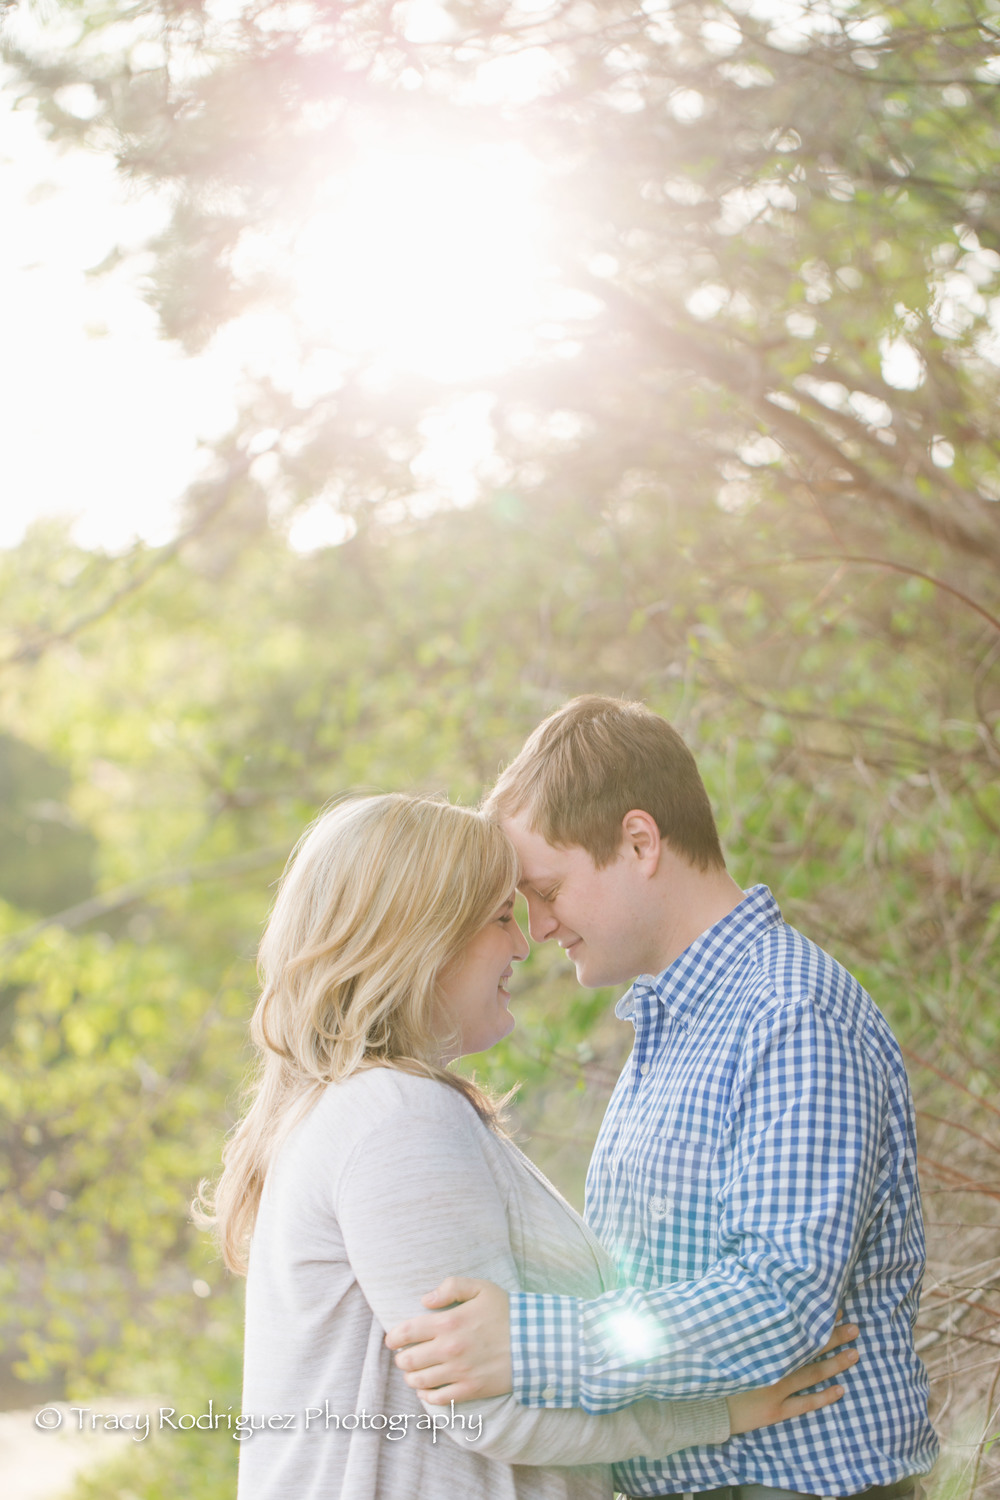 TracyRodriguezPhotography-Engagement-LowRes-38.jpg